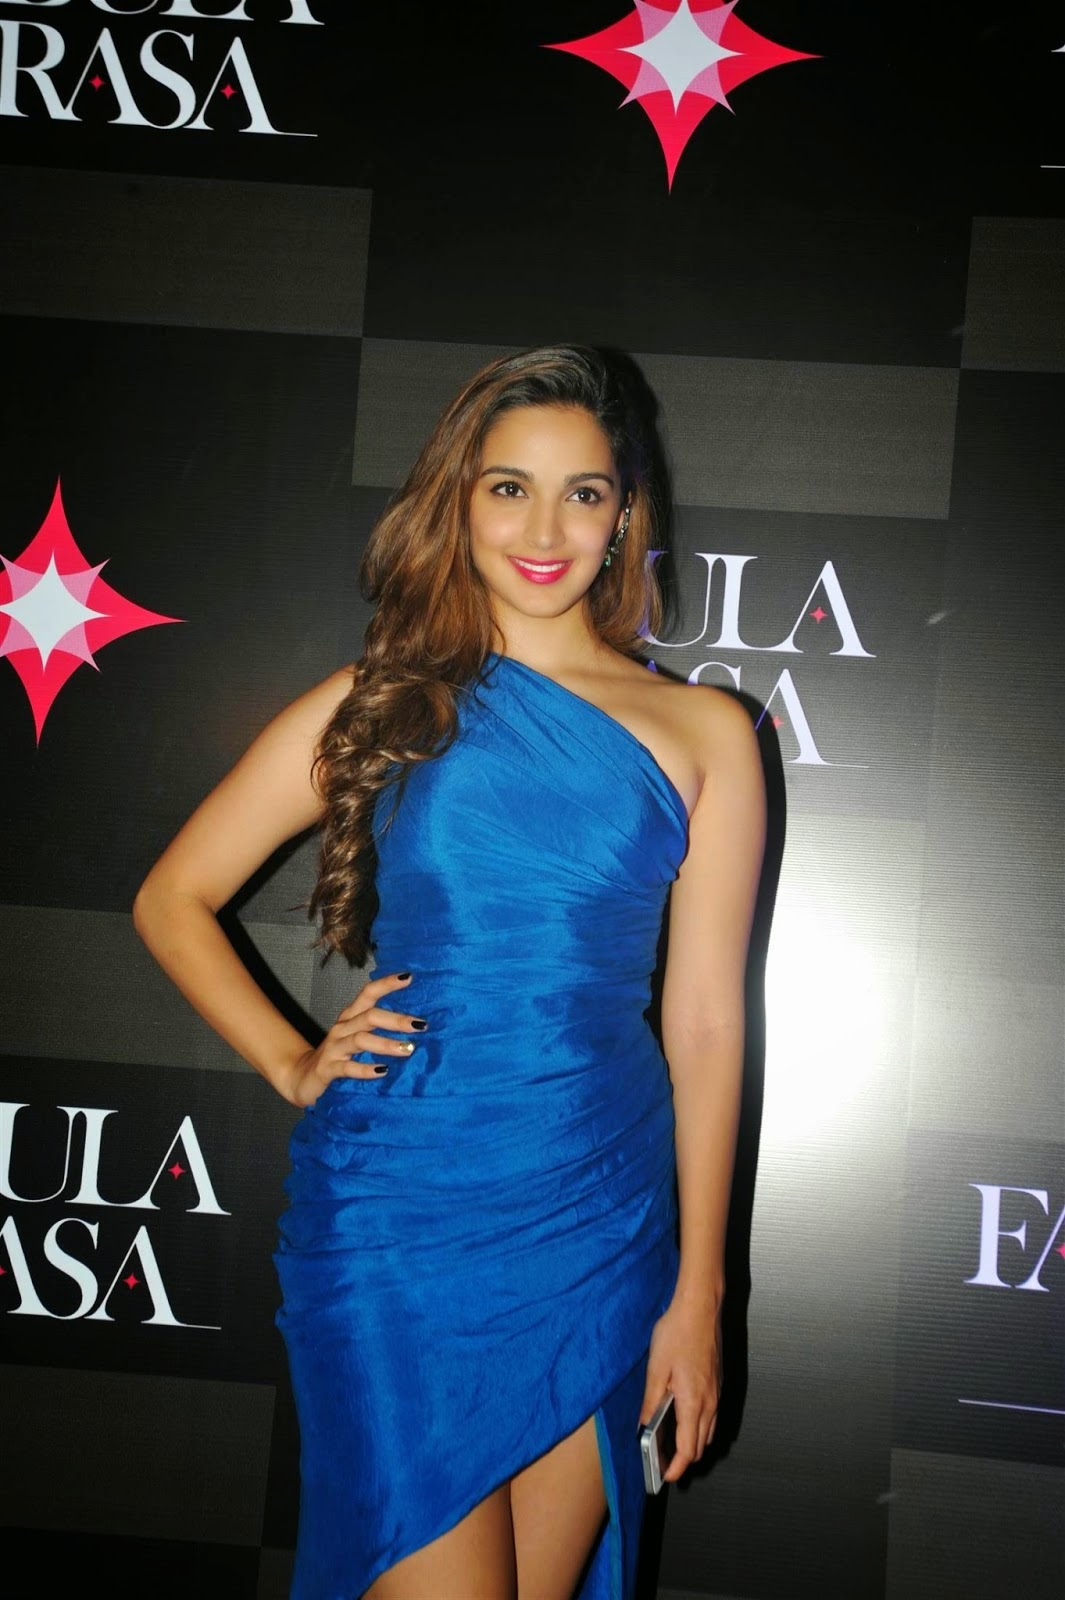 kiara advani in sexy outfits pics